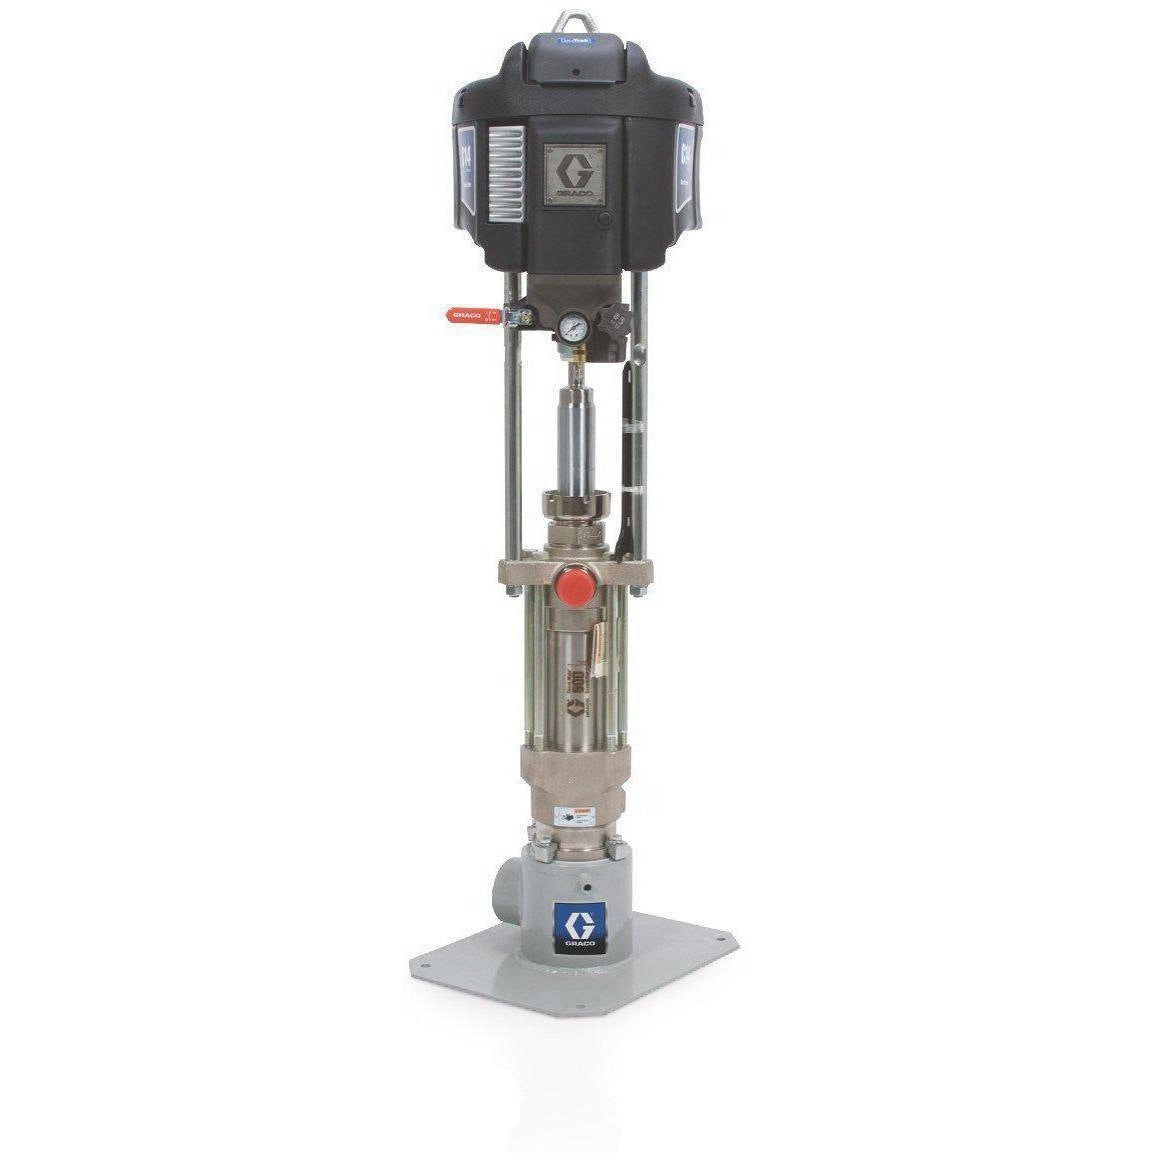 P63Dcs-Graco P63Dcs Nxt™ Check-Mateâ® Air-Powered 63:1 Grease Pump Without Datatrak-Order-Online-Fireball-Equipment